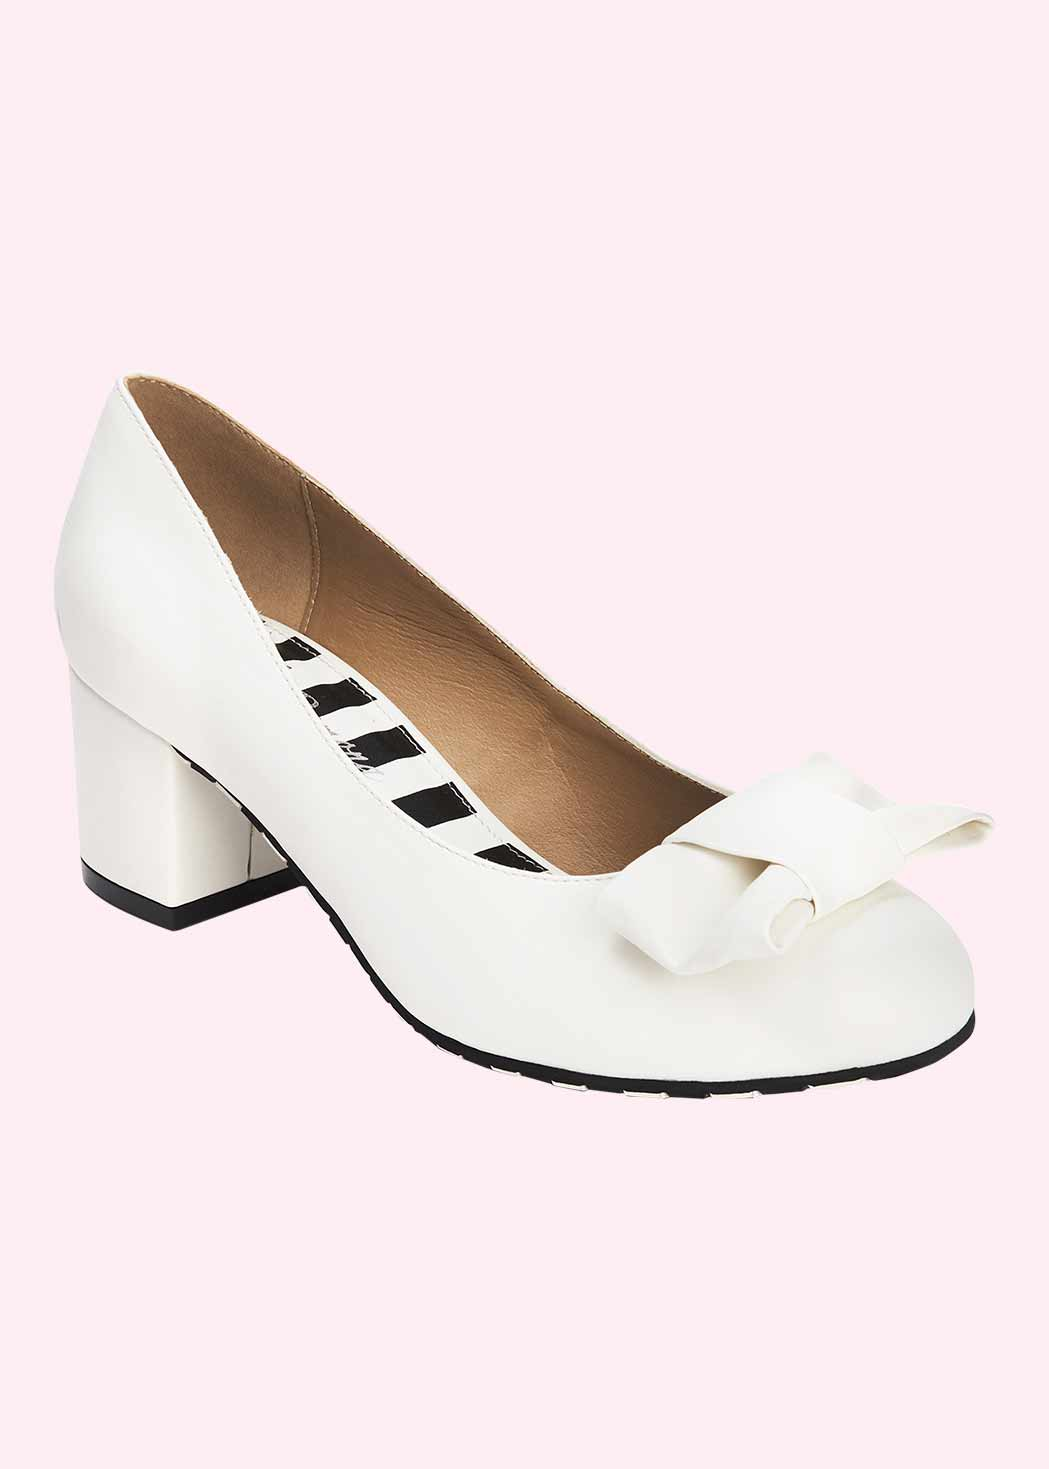 60s shoes in white with bow from Lola Ramona